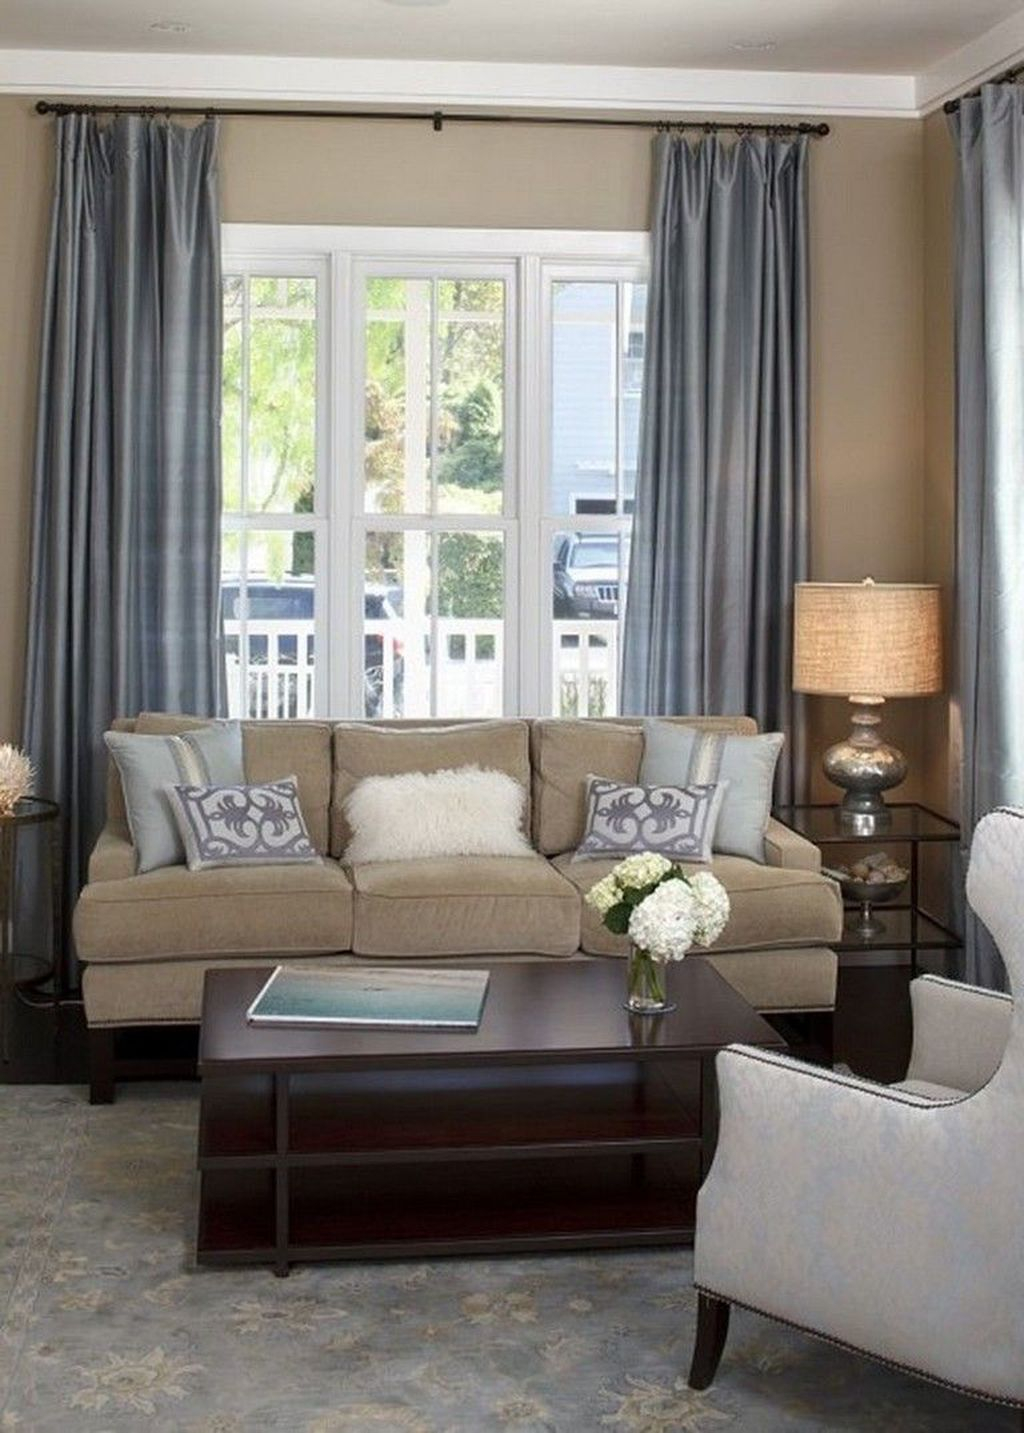 Inexpensive Living Room Curtain Design Ideas On A Budget 10